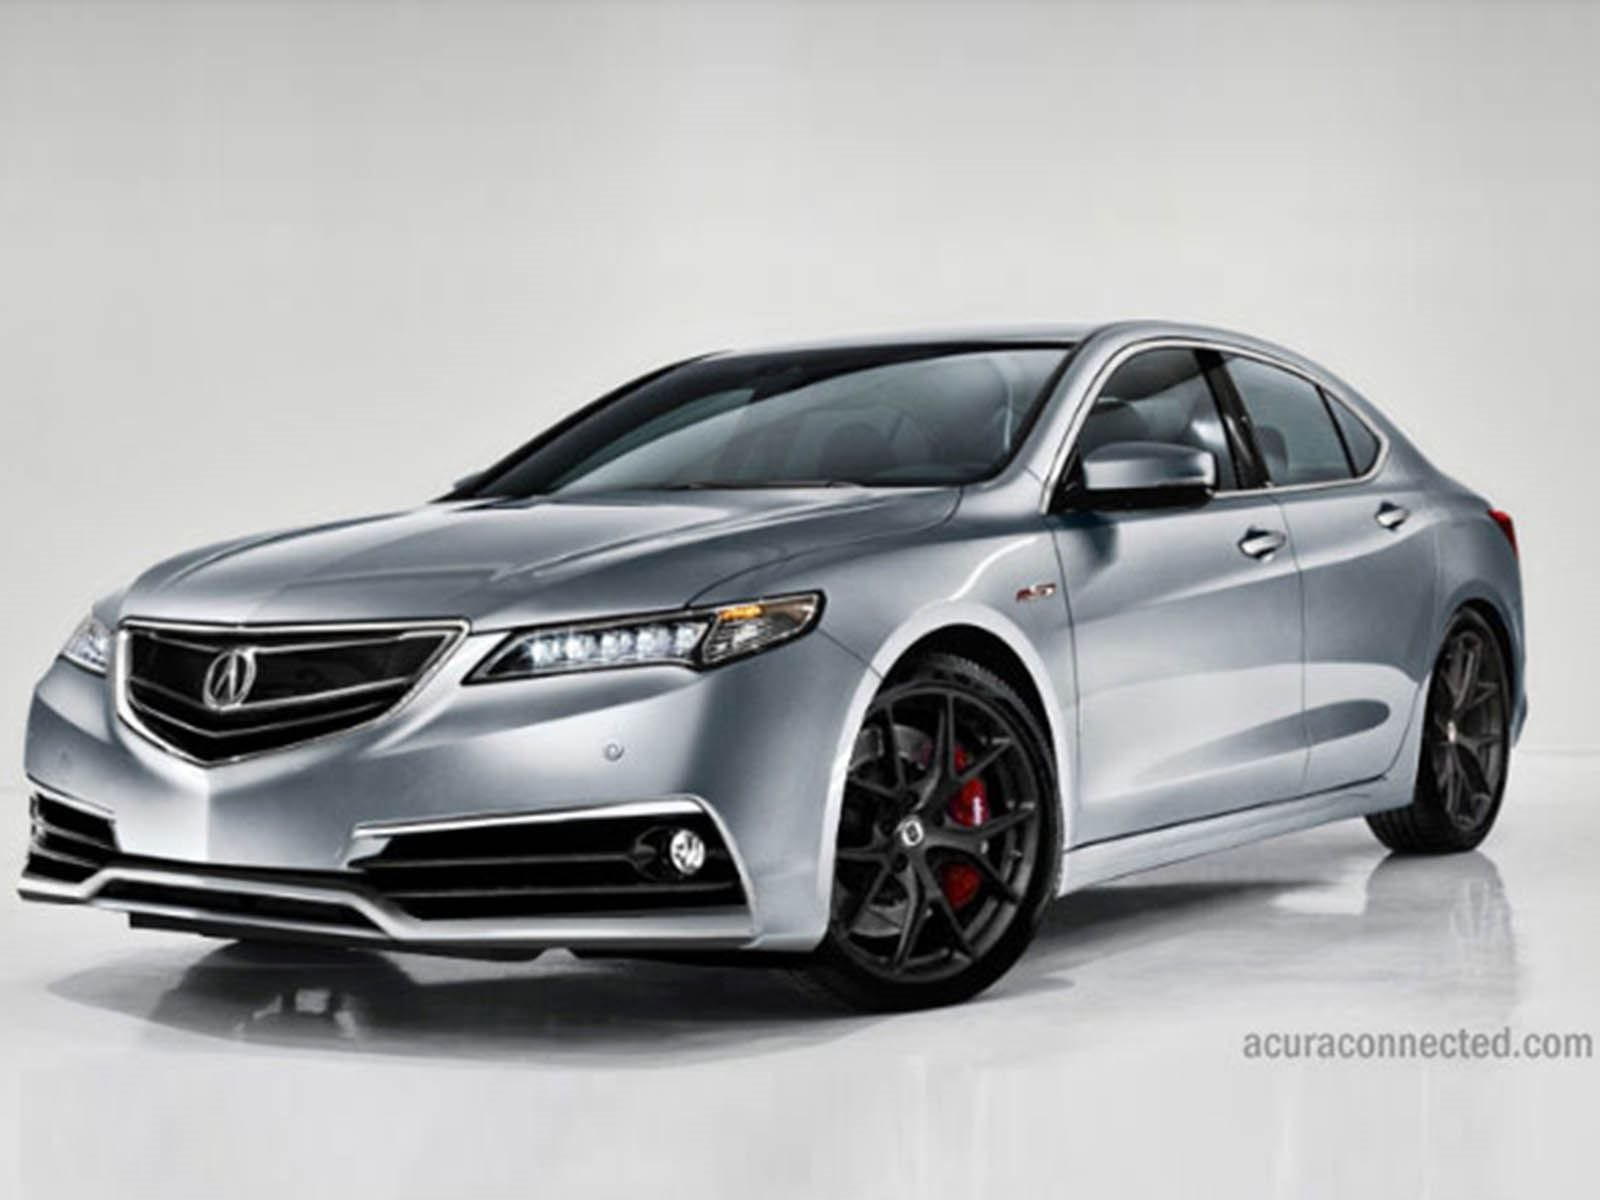 Improvements That Could Make The Acura TLX A Perfect Sport Sedan - 2018 acura tl type s for sale